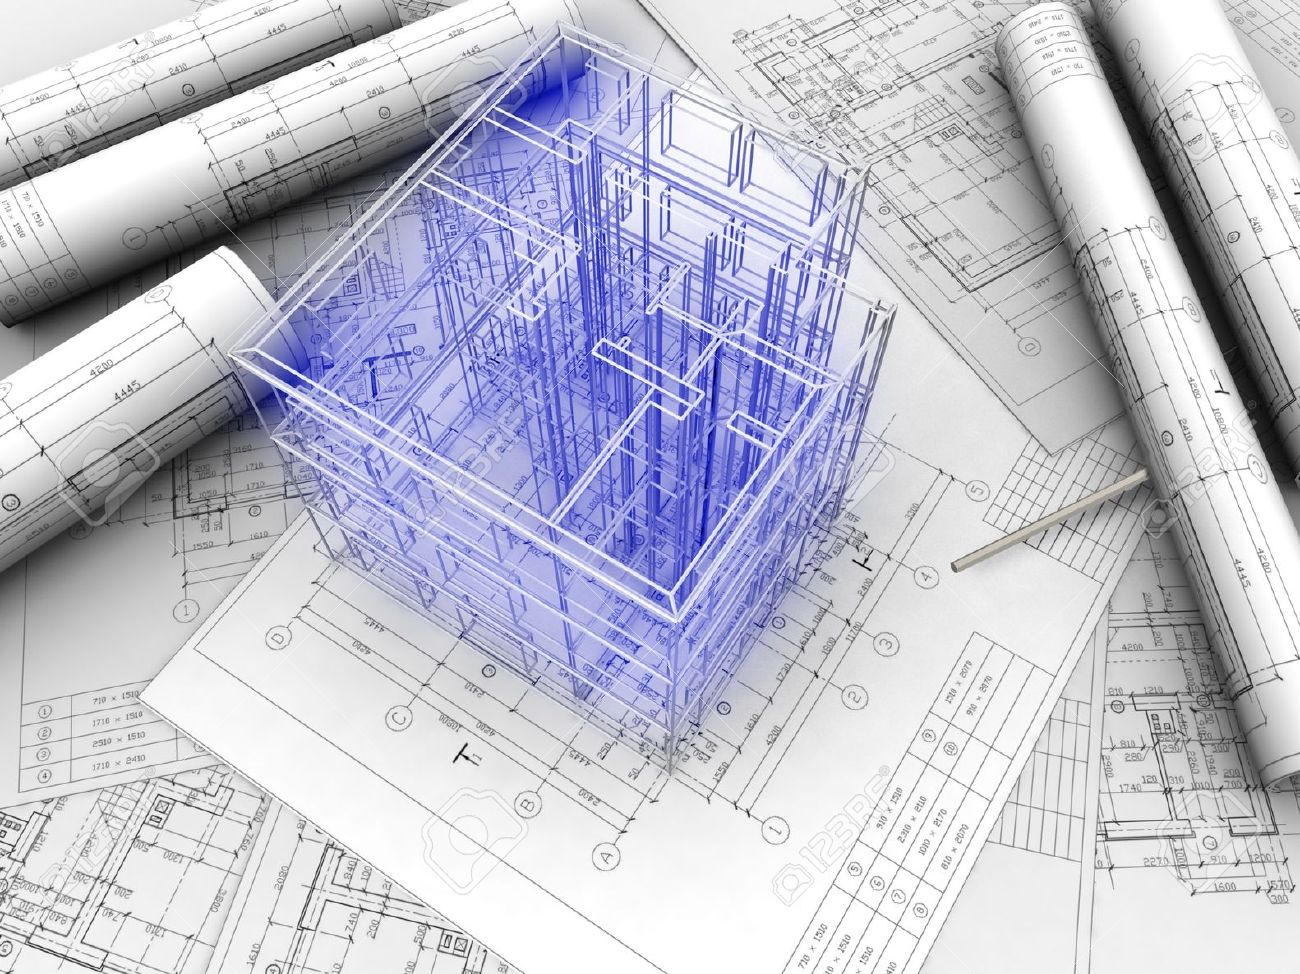 architecture blueprints 3d. Architecture Blueprints 3d Cad Architect Stock Photos. Royalty Free Images And E